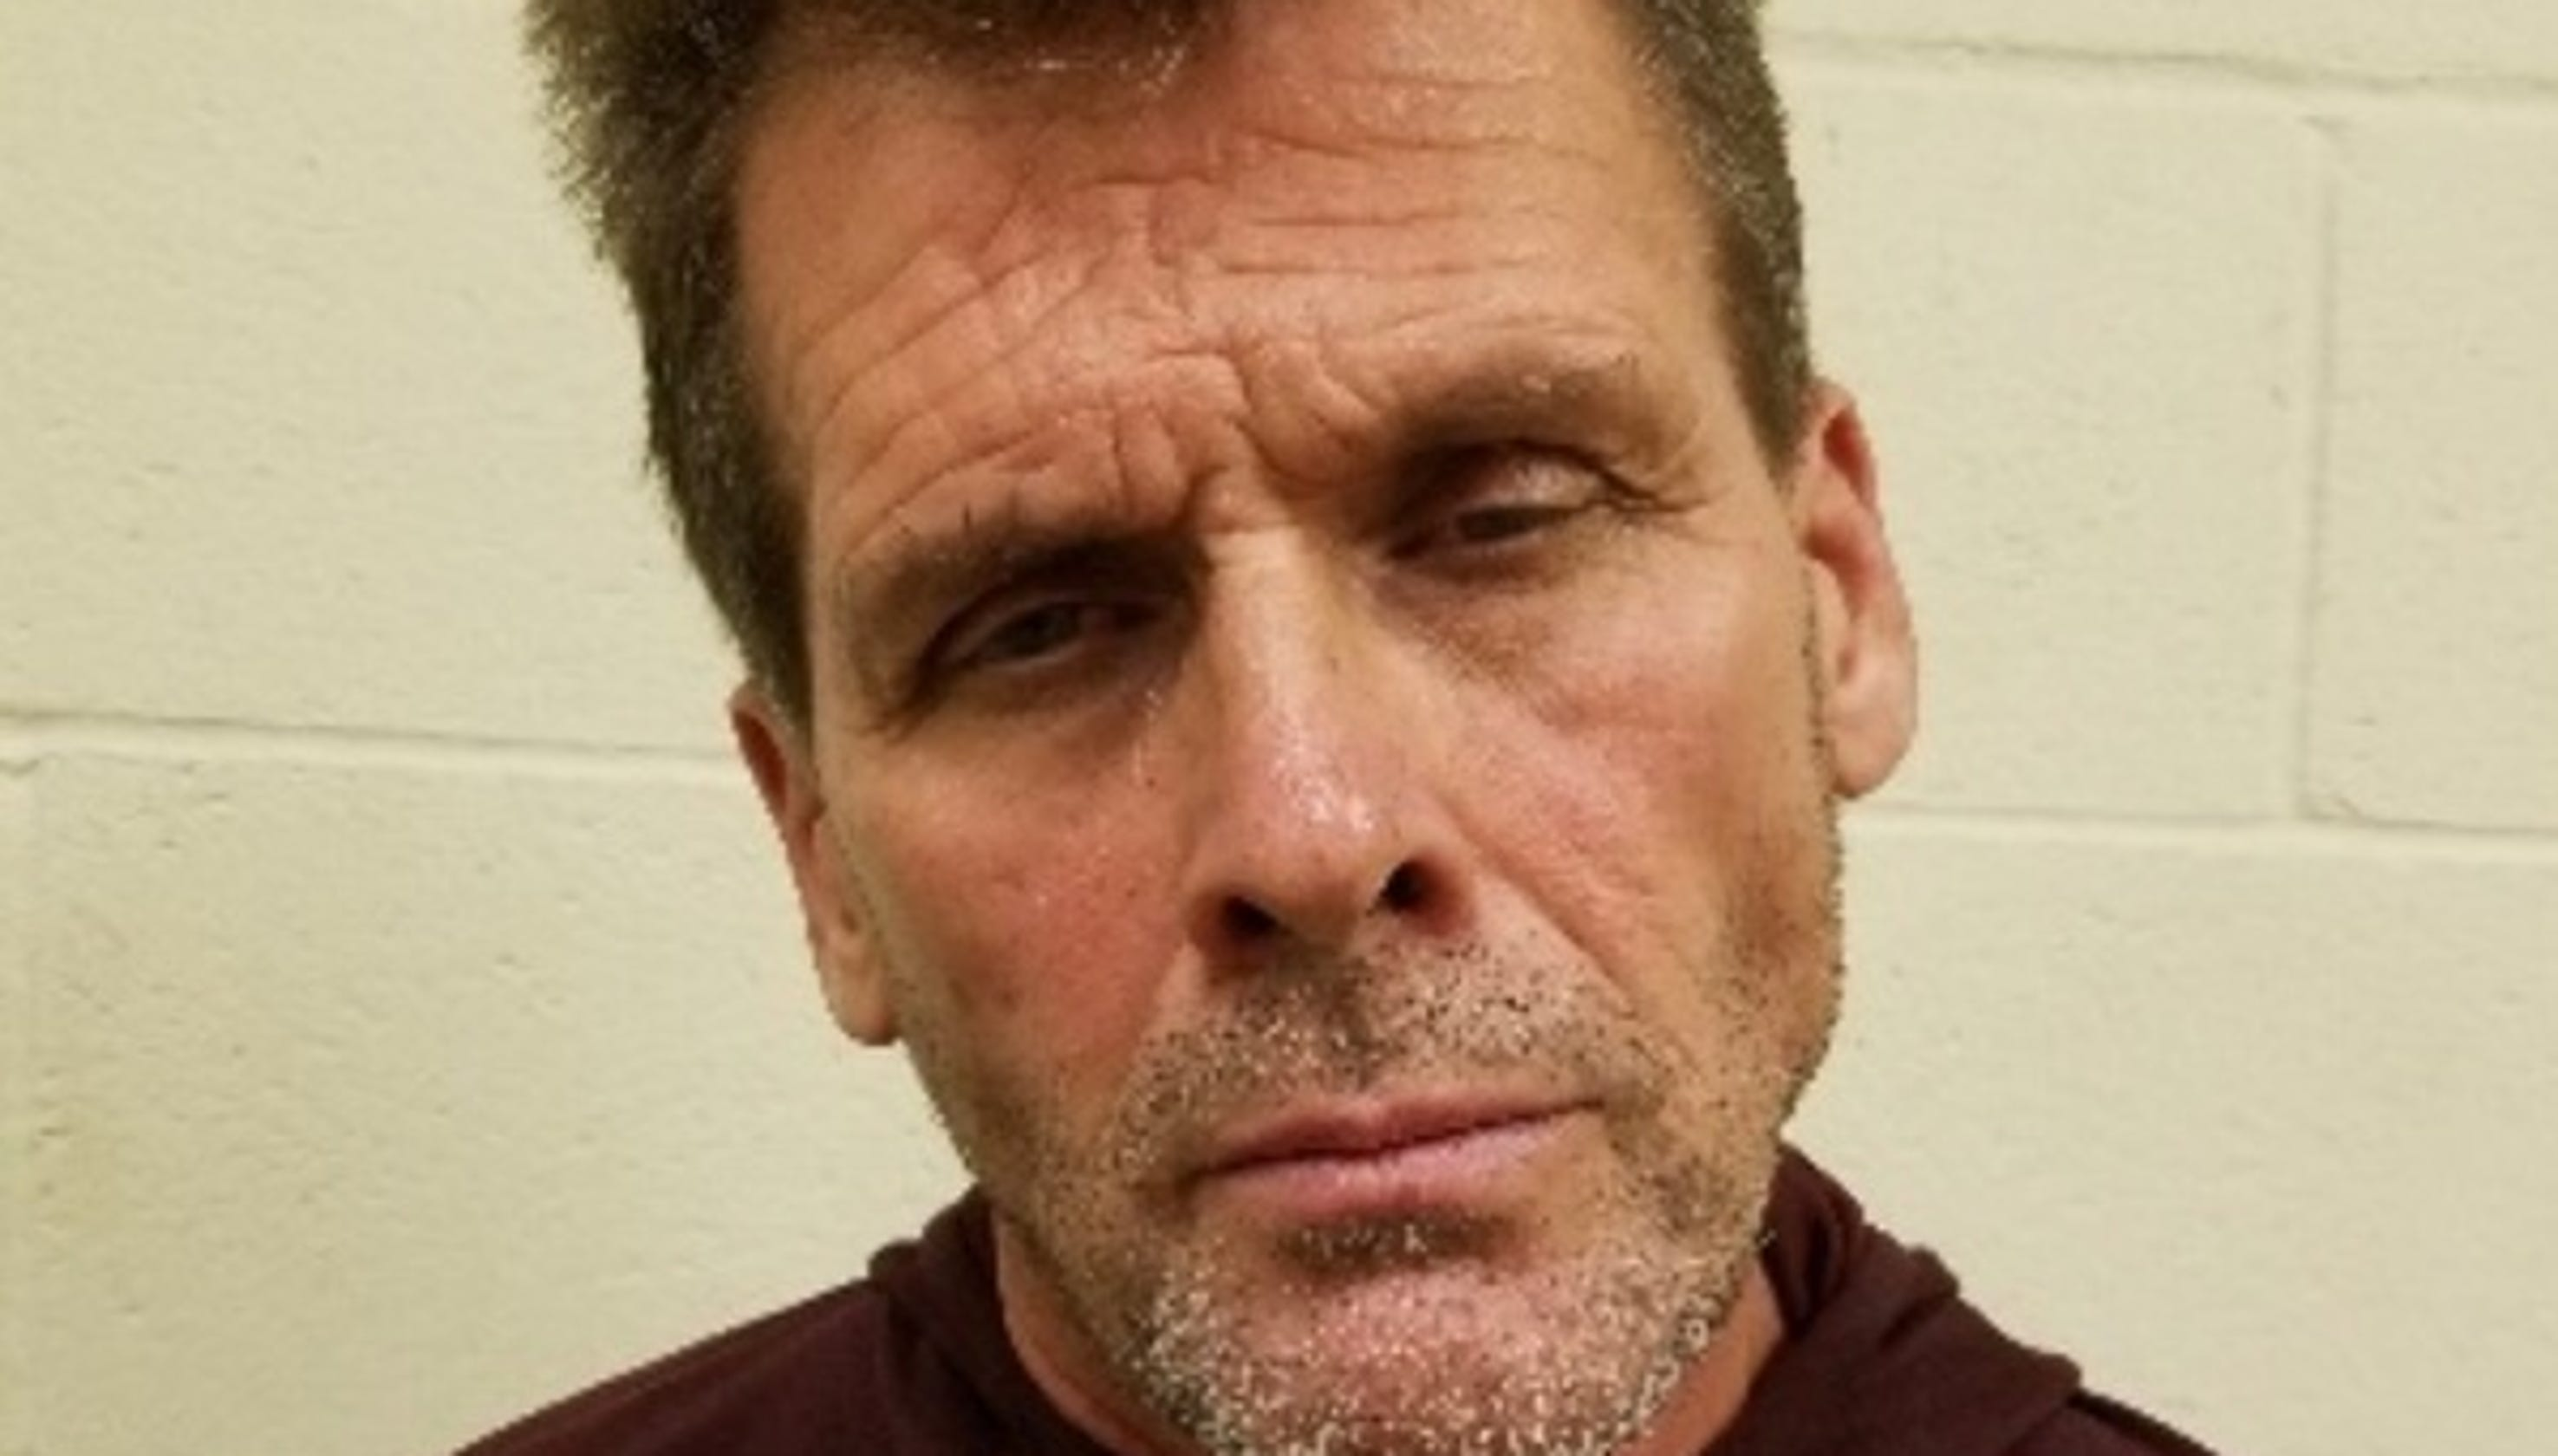 This Rambo wannabe was arrested in connection with a Tulare County